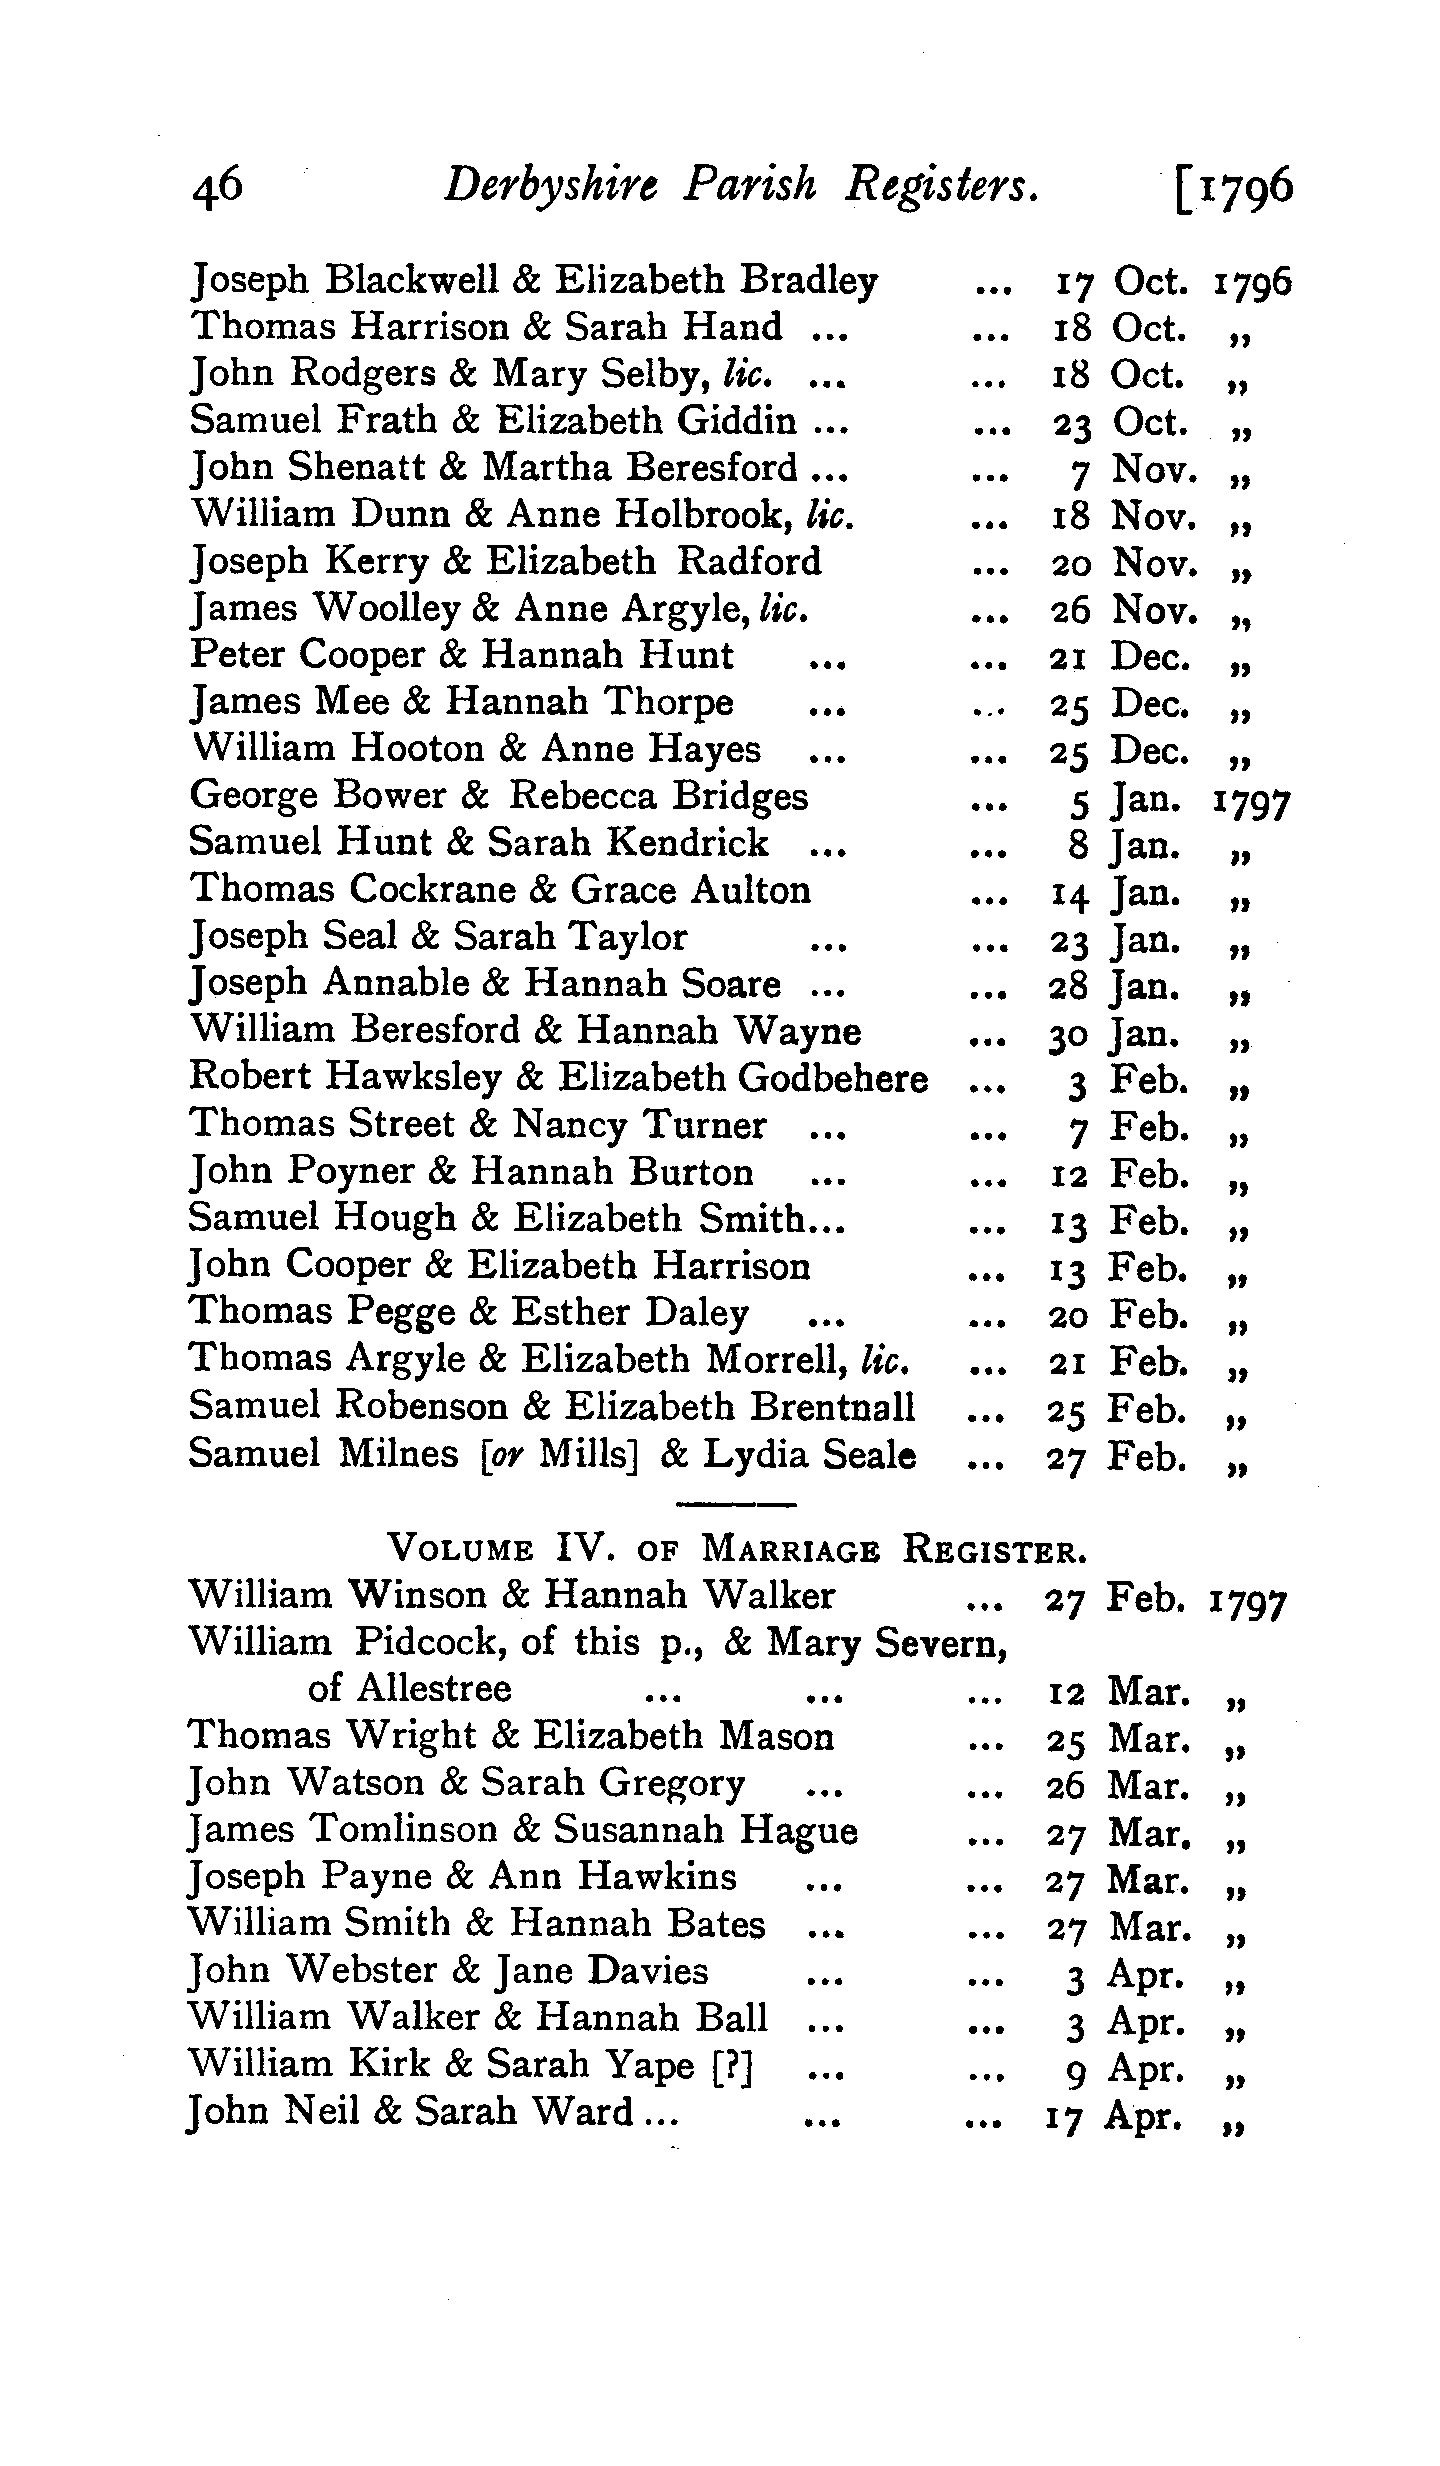 Derbyshire Parish Registers - Marriages volume 3 page 46 - click to open larger version in a new window